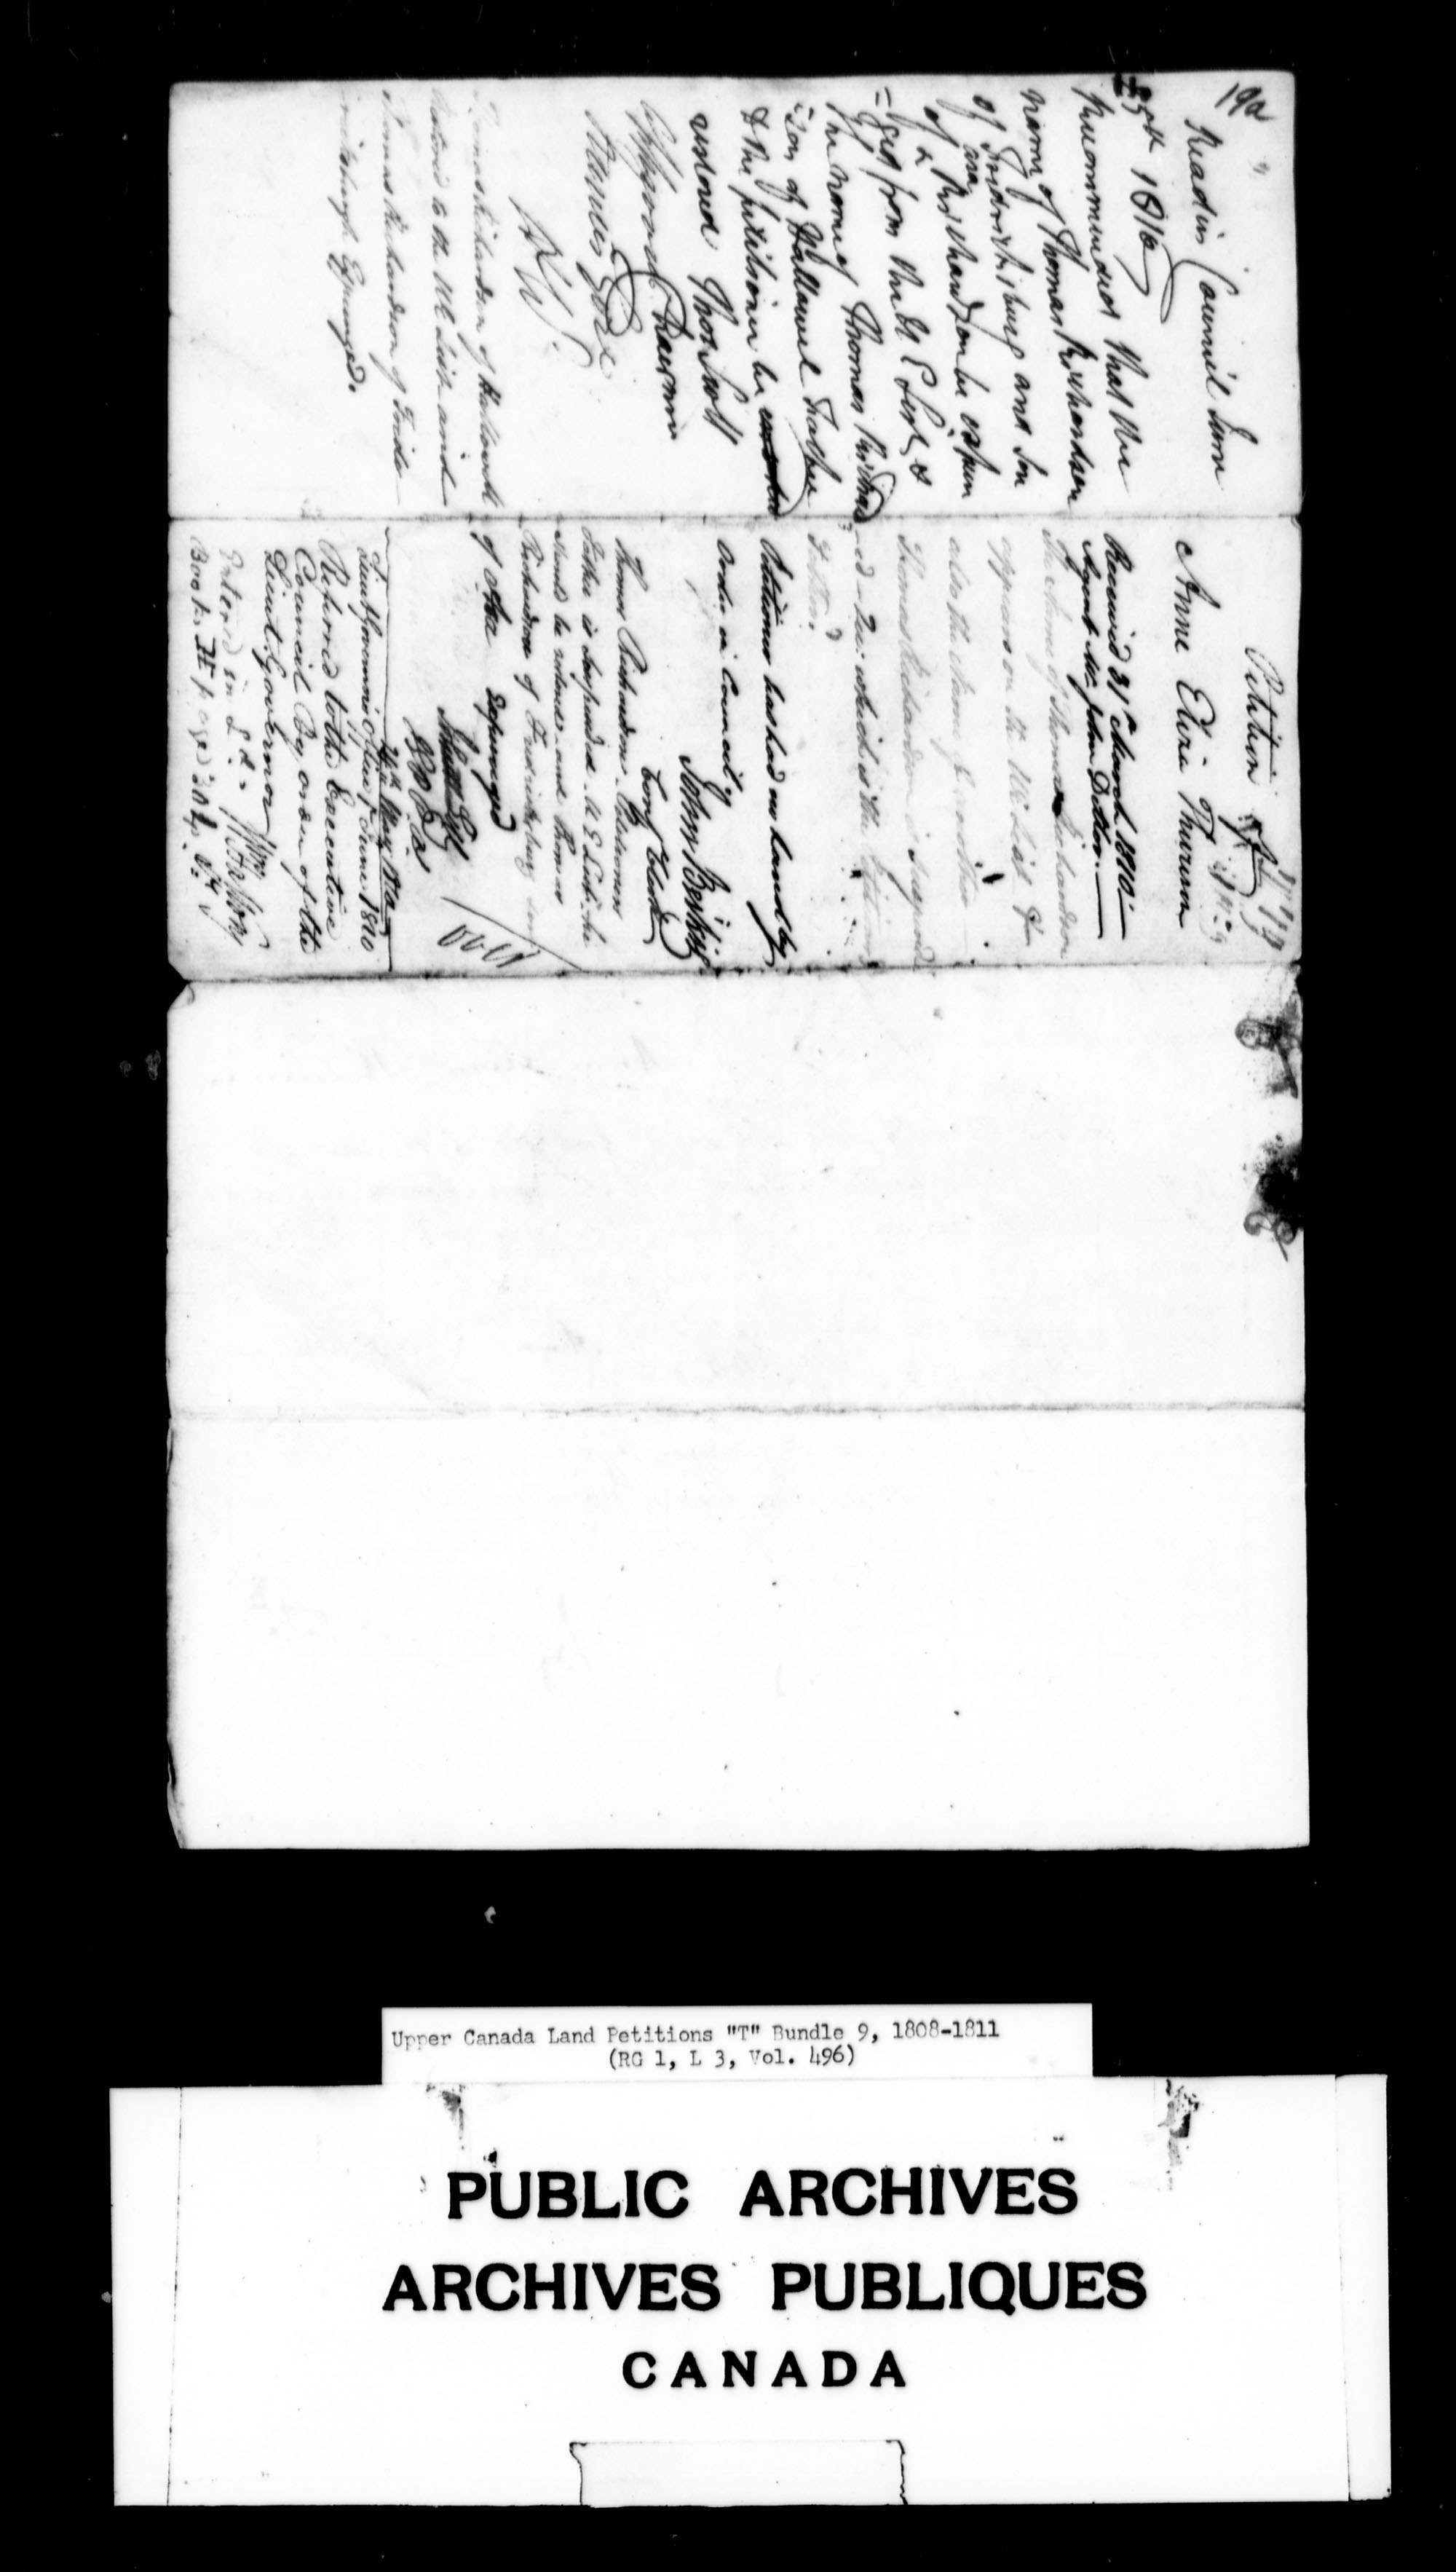 Title: Upper Canada Land Petitions (1763-1865) - Mikan Number: 205131 - Microform: c-2833